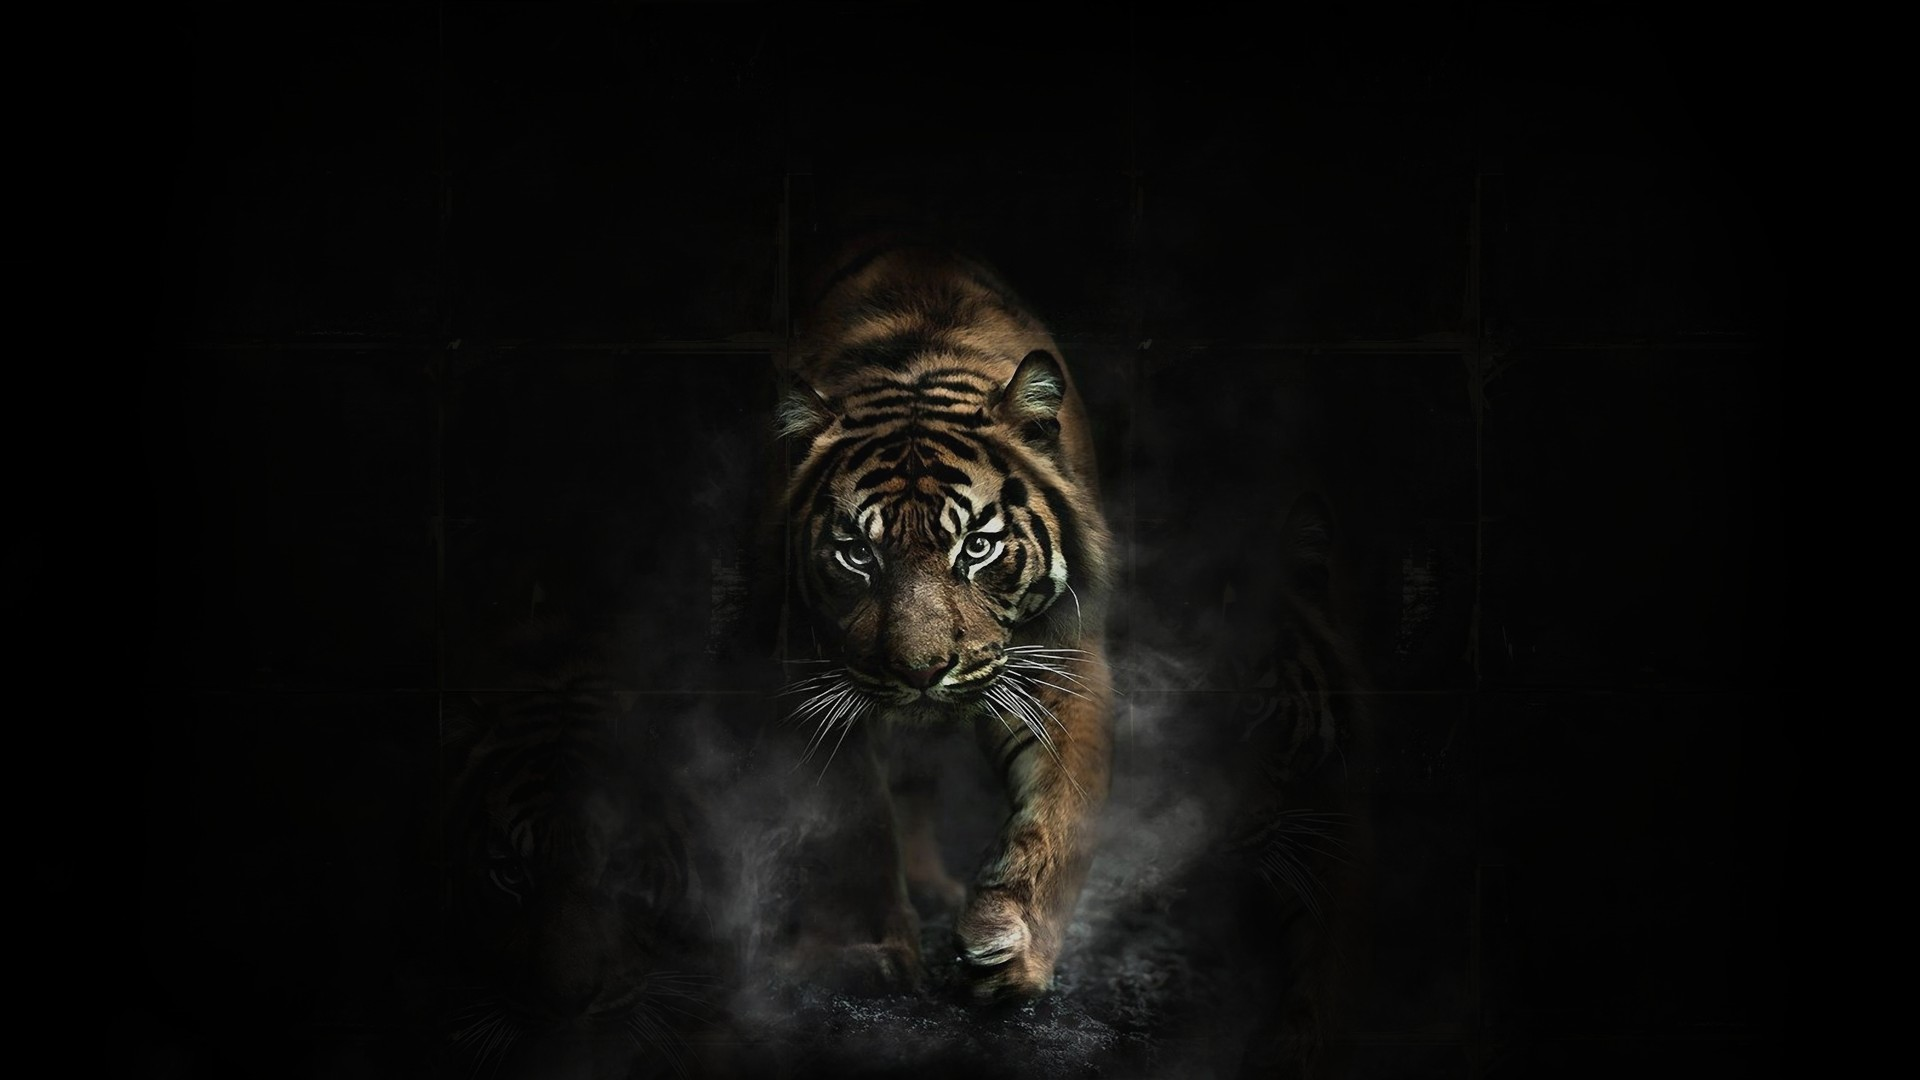 tiger wallpaper ·① download free awesome high resolution